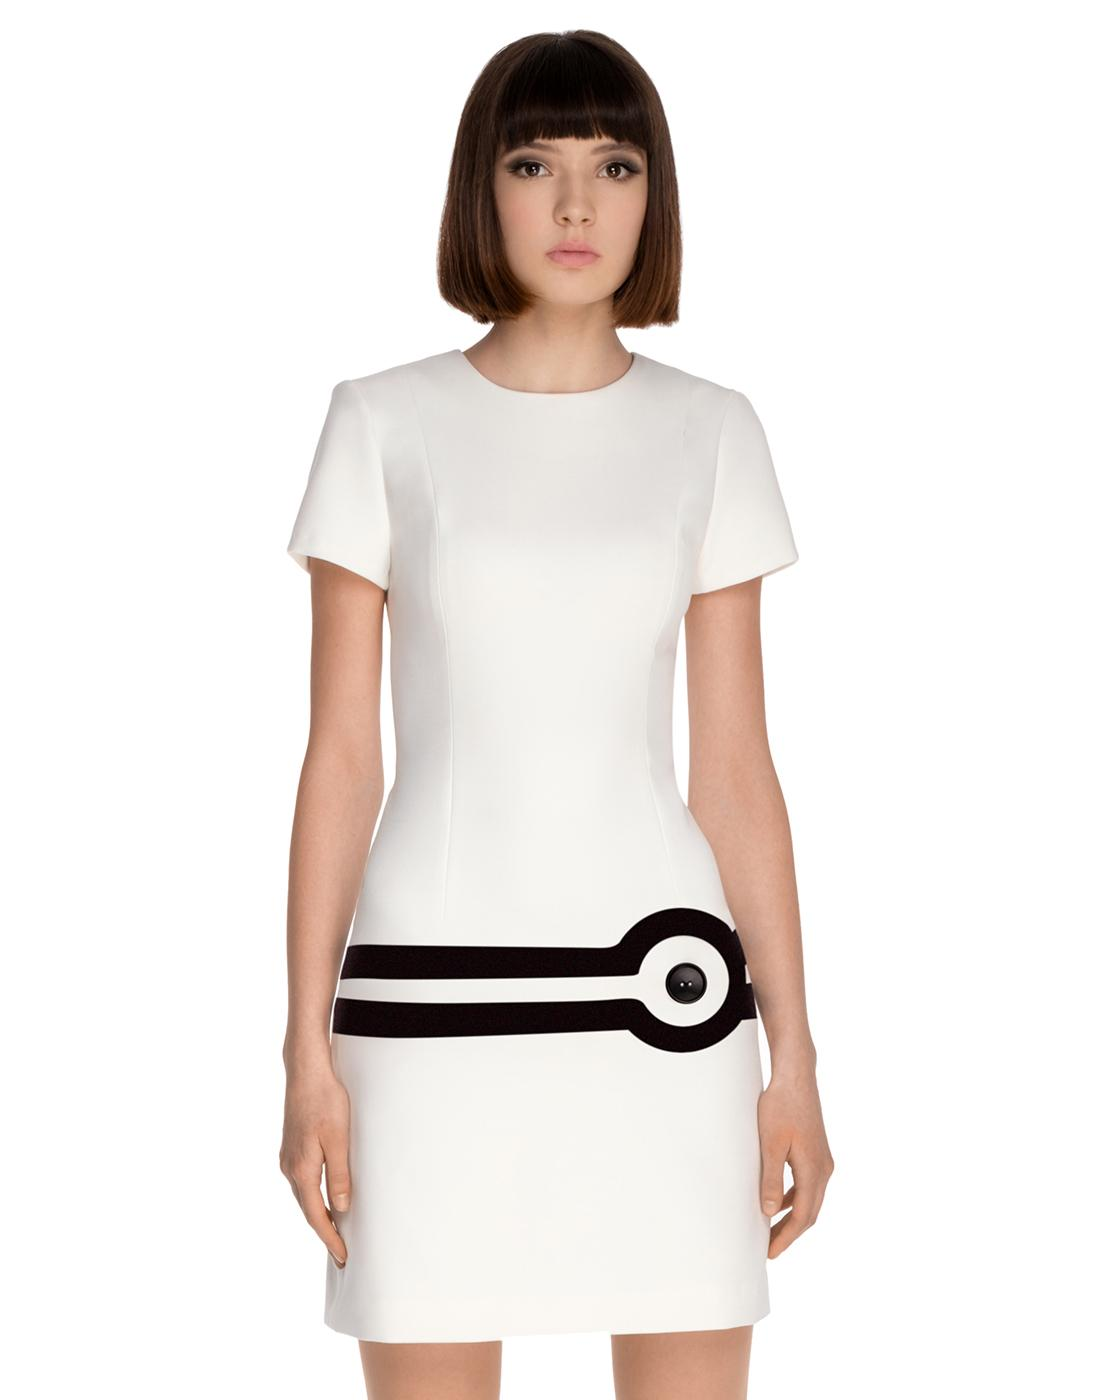 MARMALADE Retro 60s Mod Target Dress in White